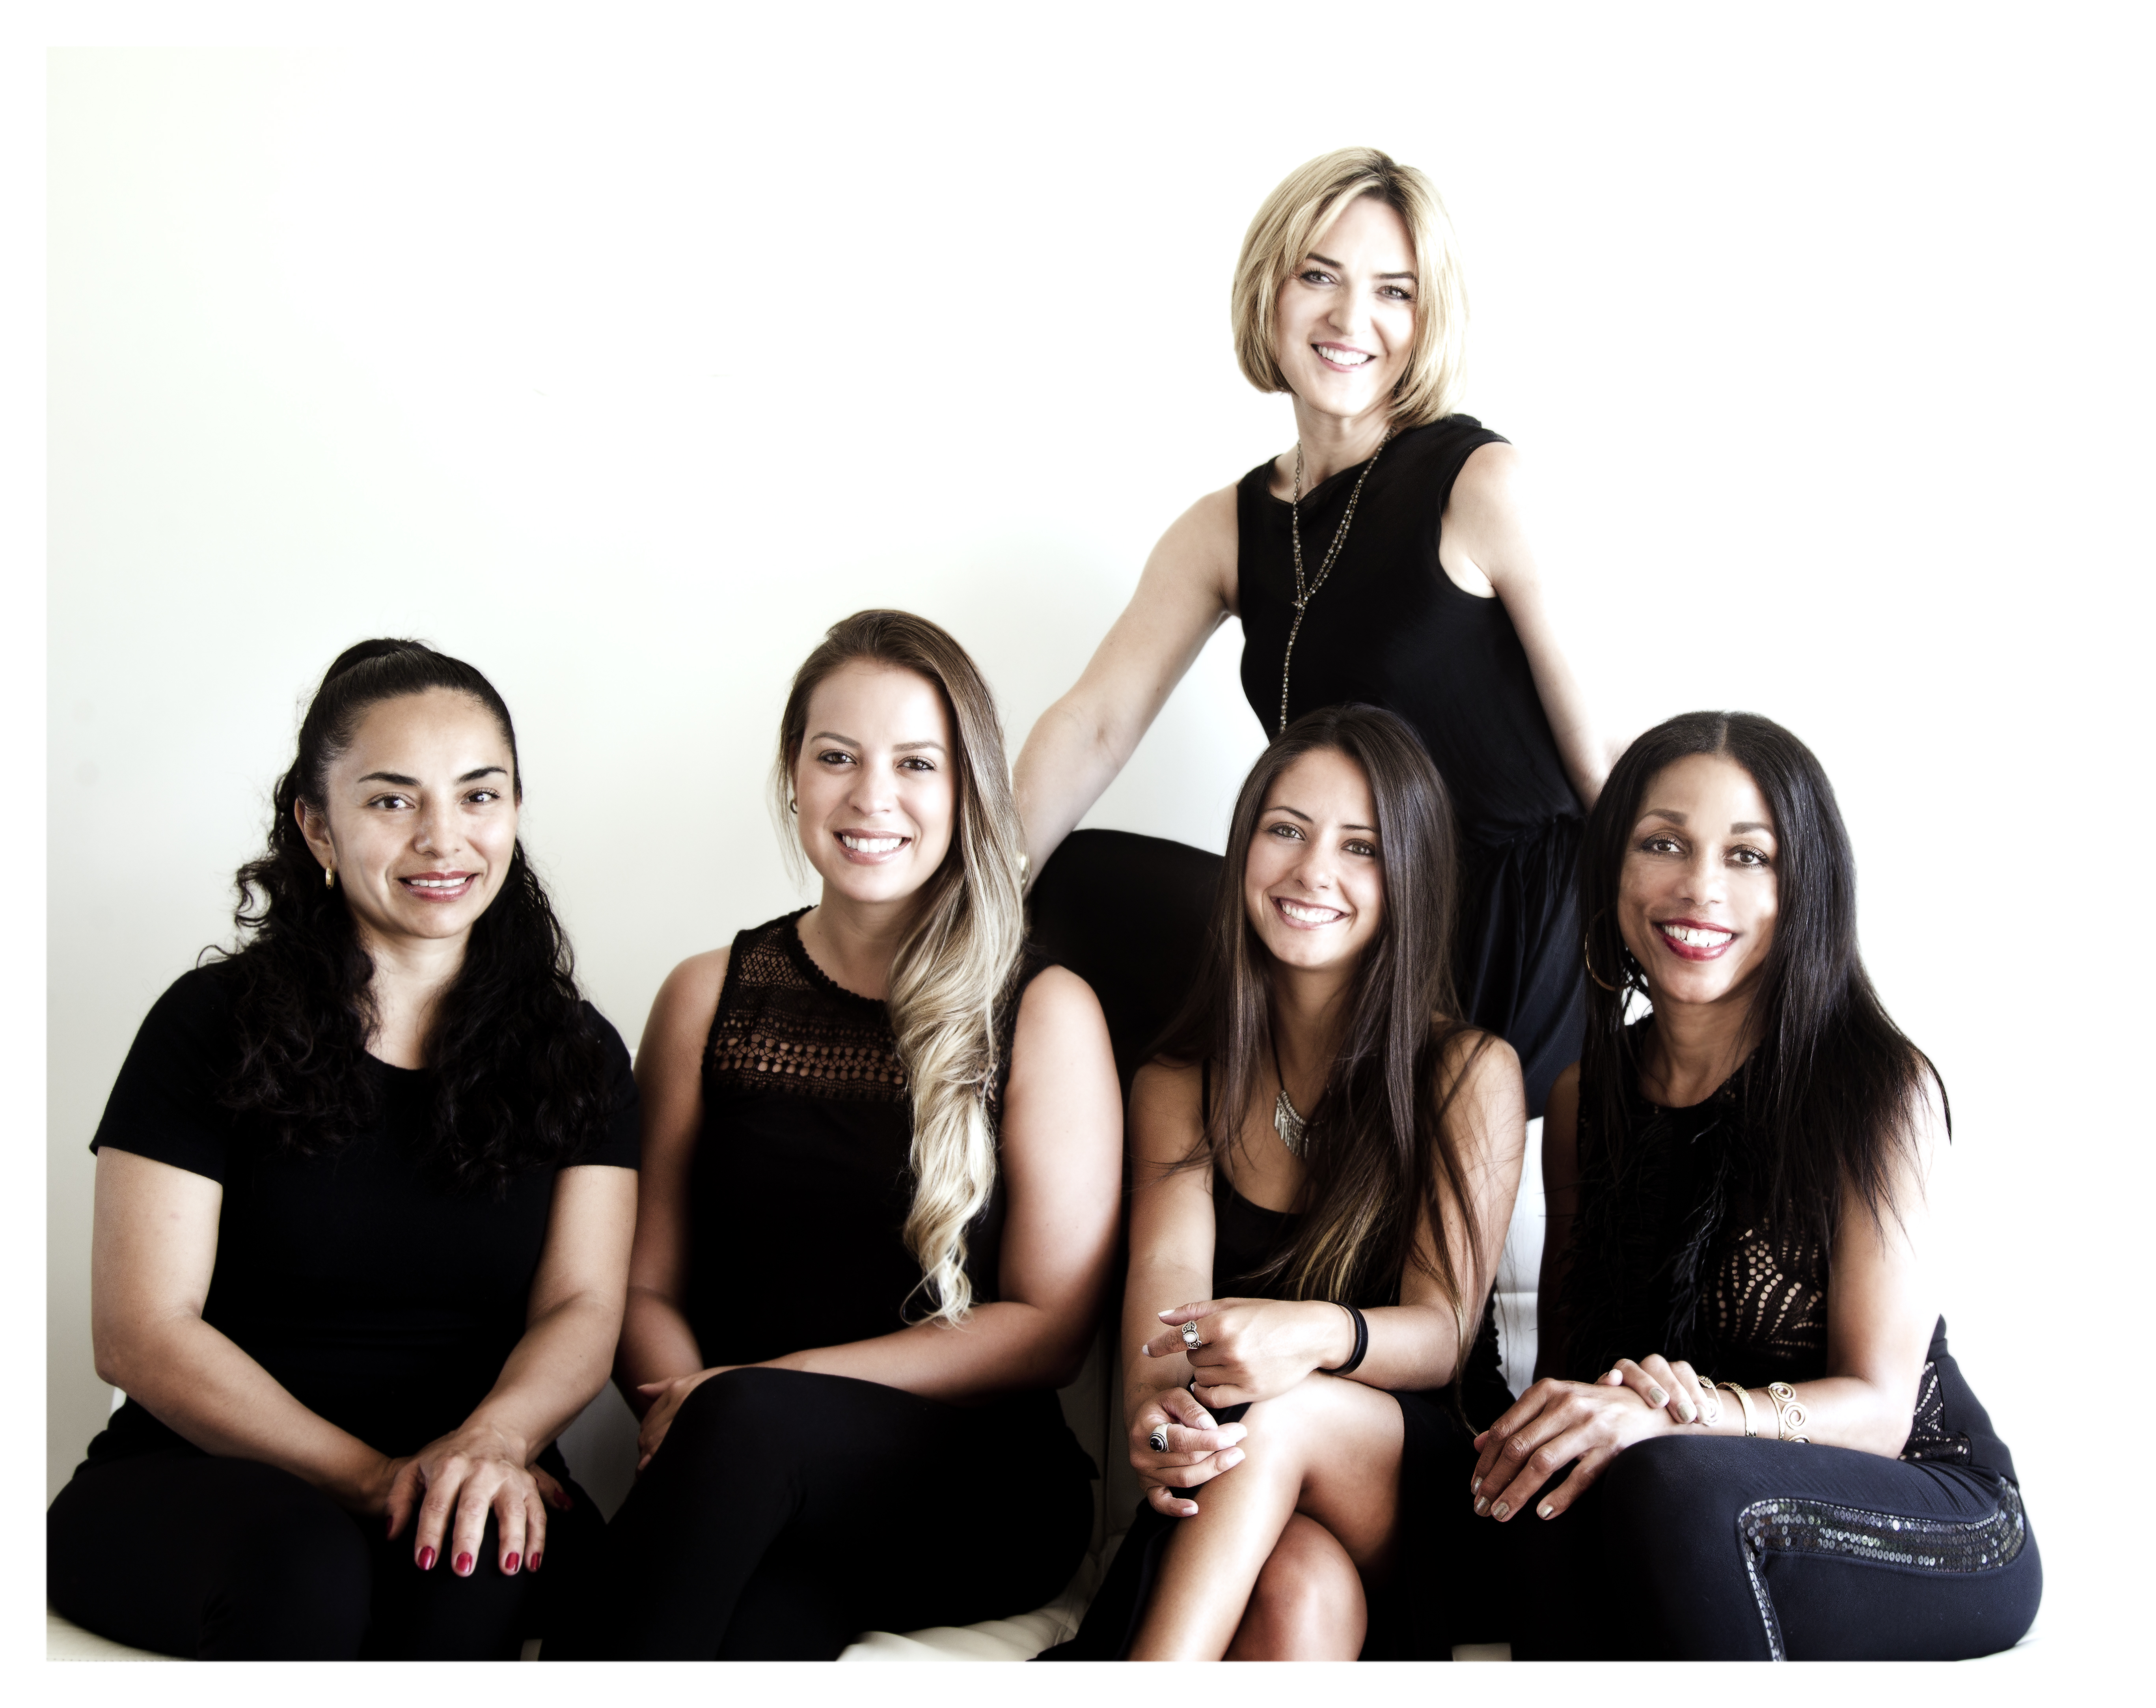 Eden McCracken, far right, with her team of lead home stylists, from left, Veronica, Mariana, Isabelle, and Sheri.